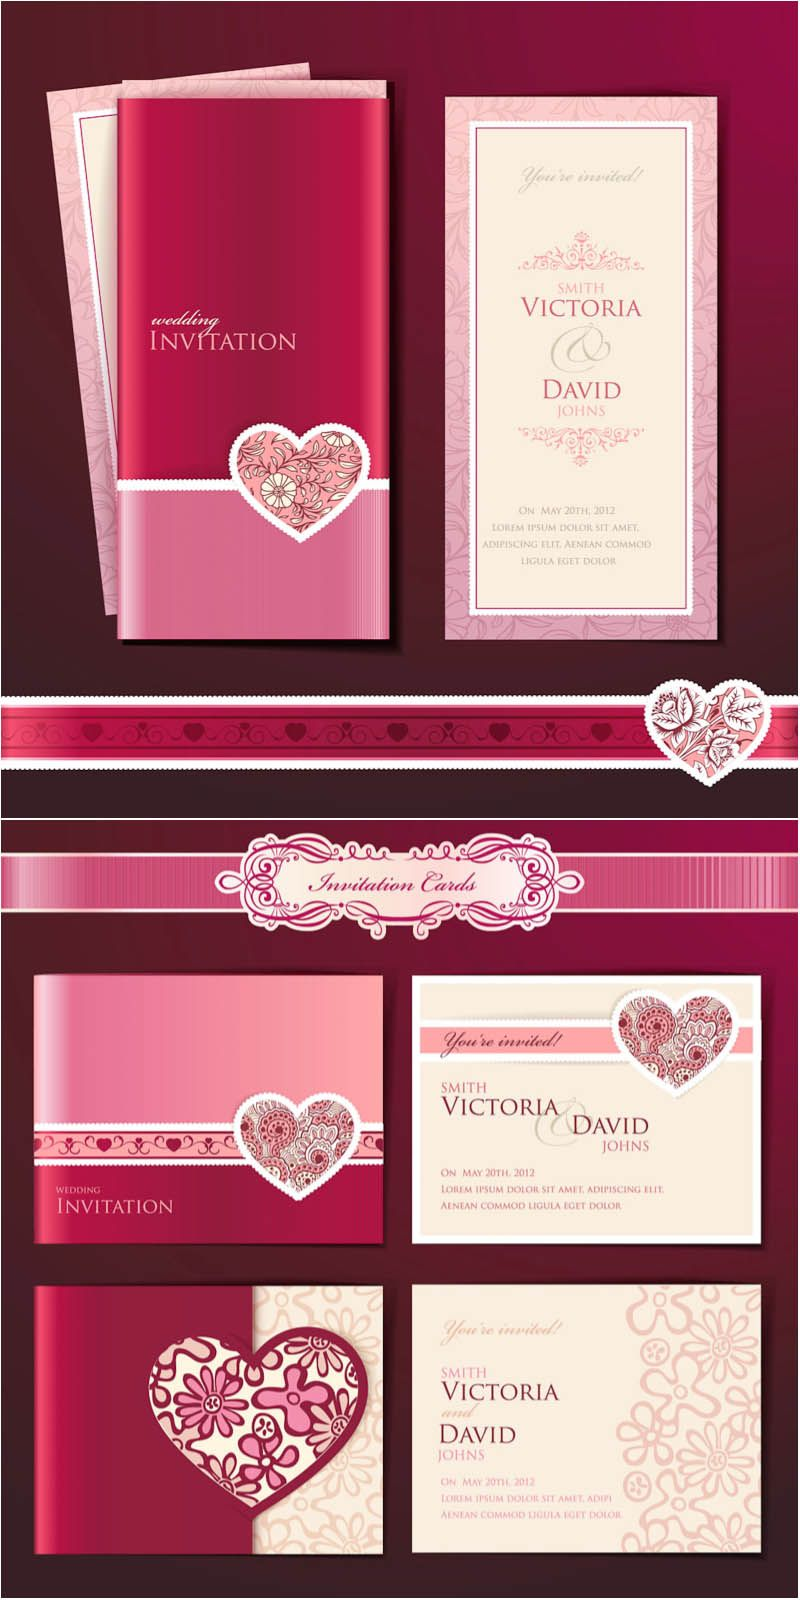 Wedding invitation cards vector. We have over 10,000